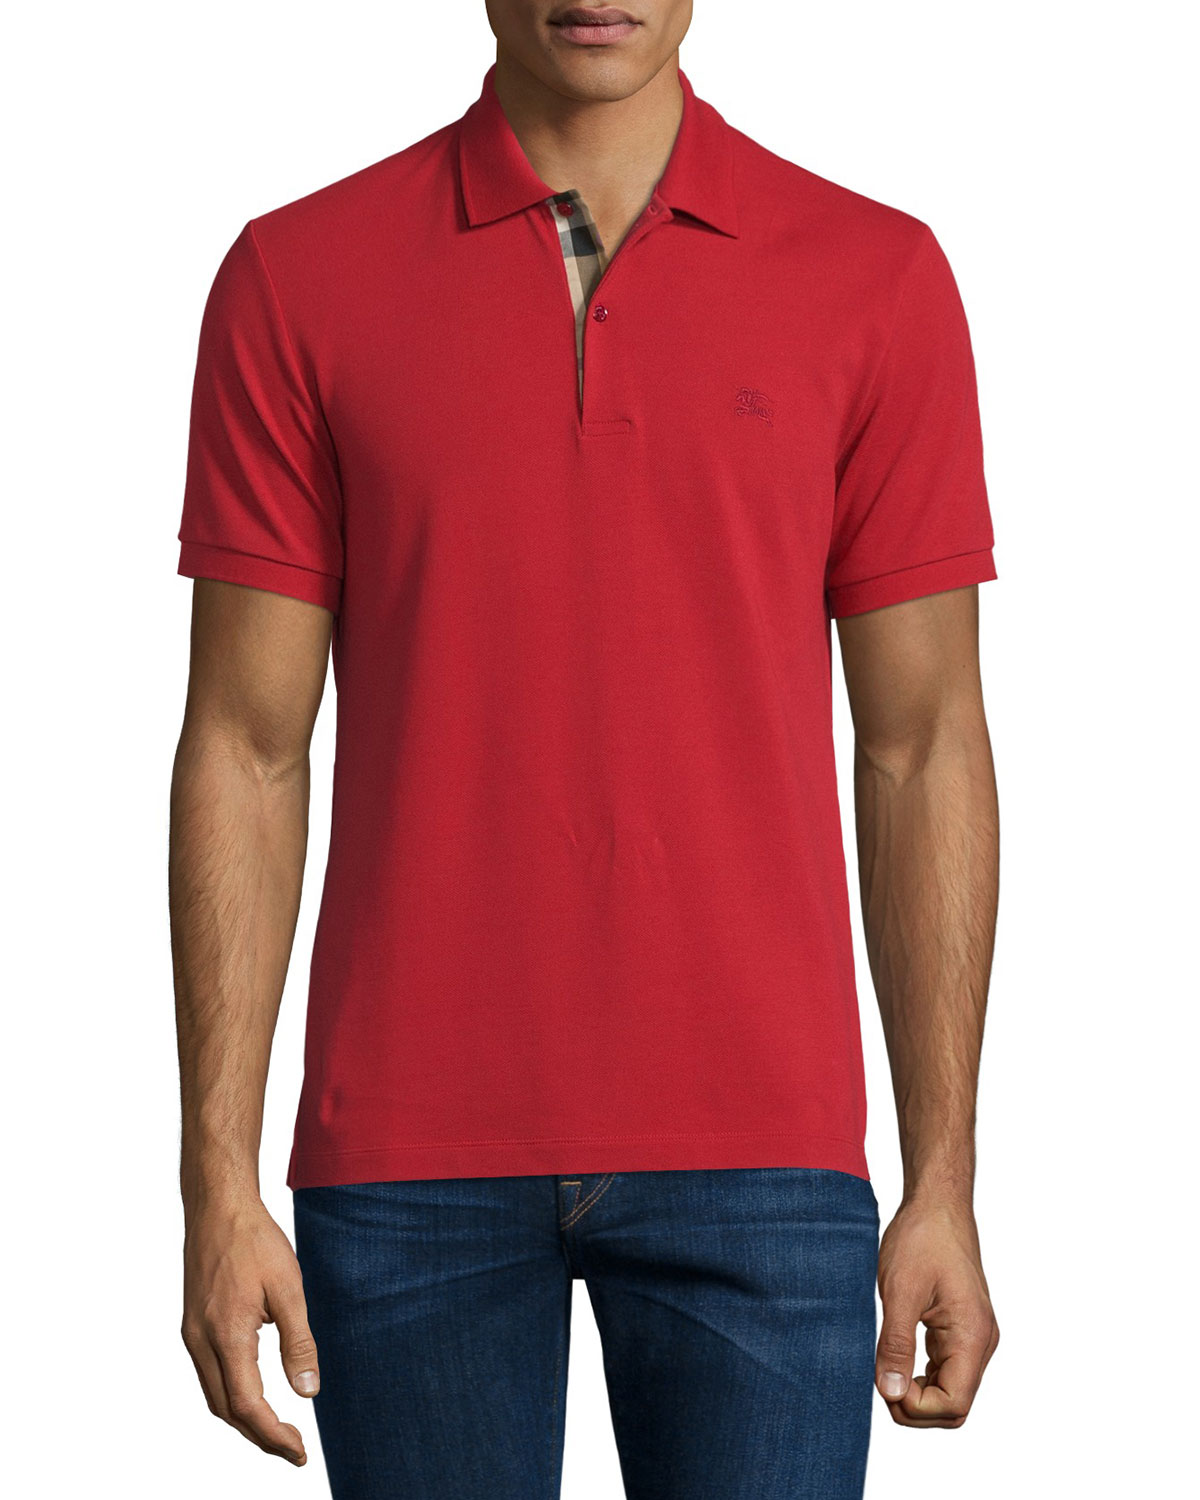 Short-Sleeve Oxford Polo Shirt, Military Red